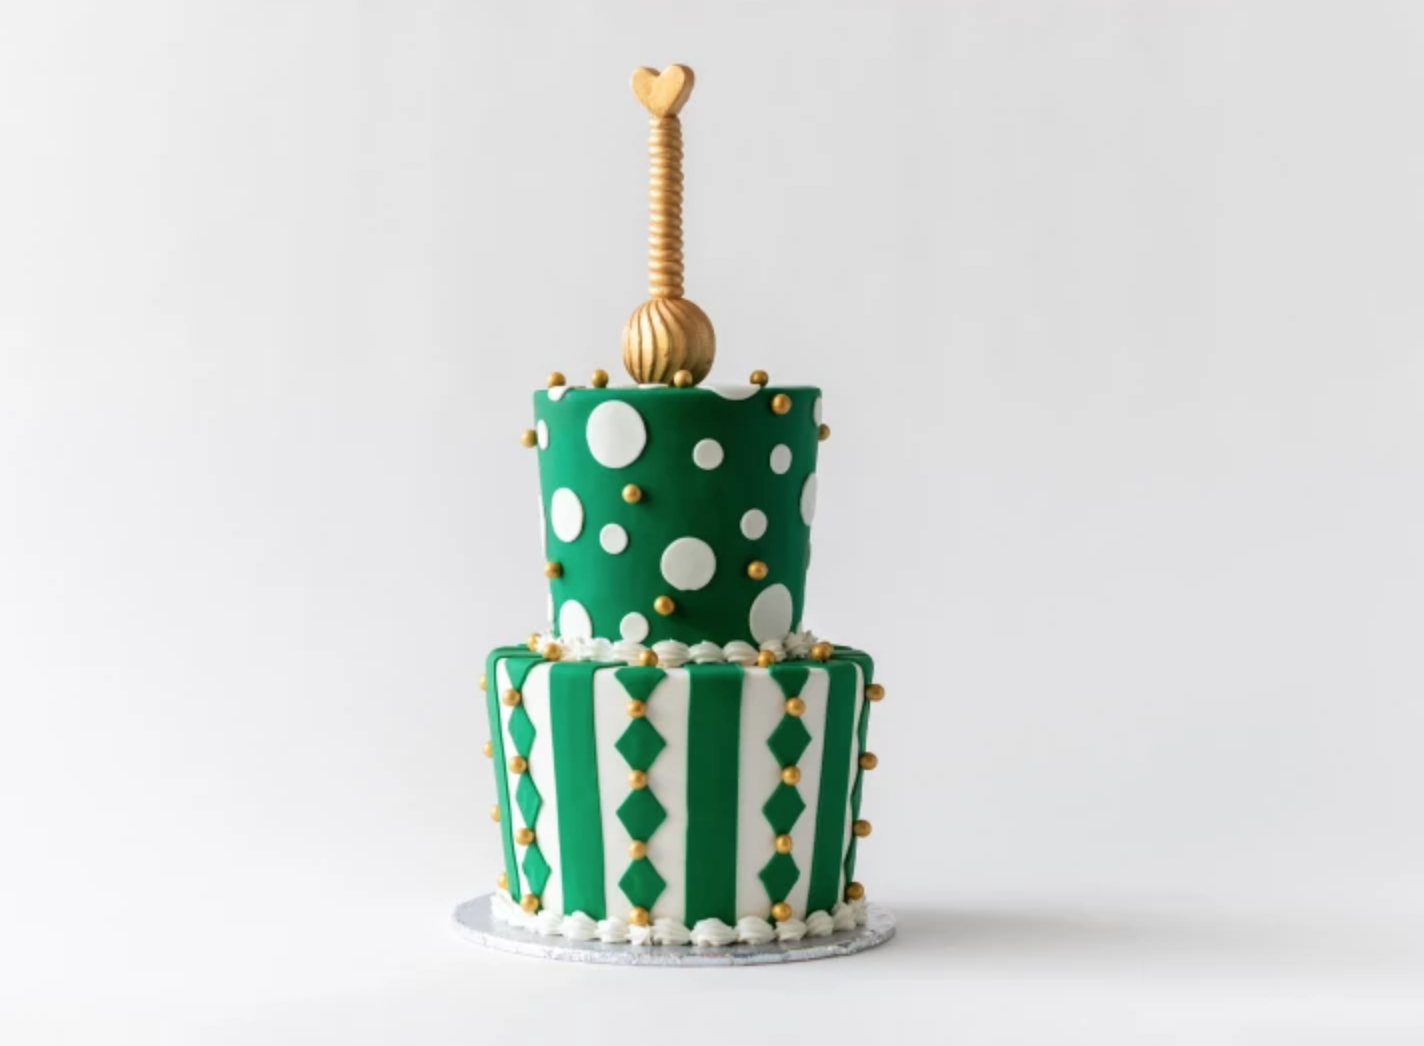 green and white cake